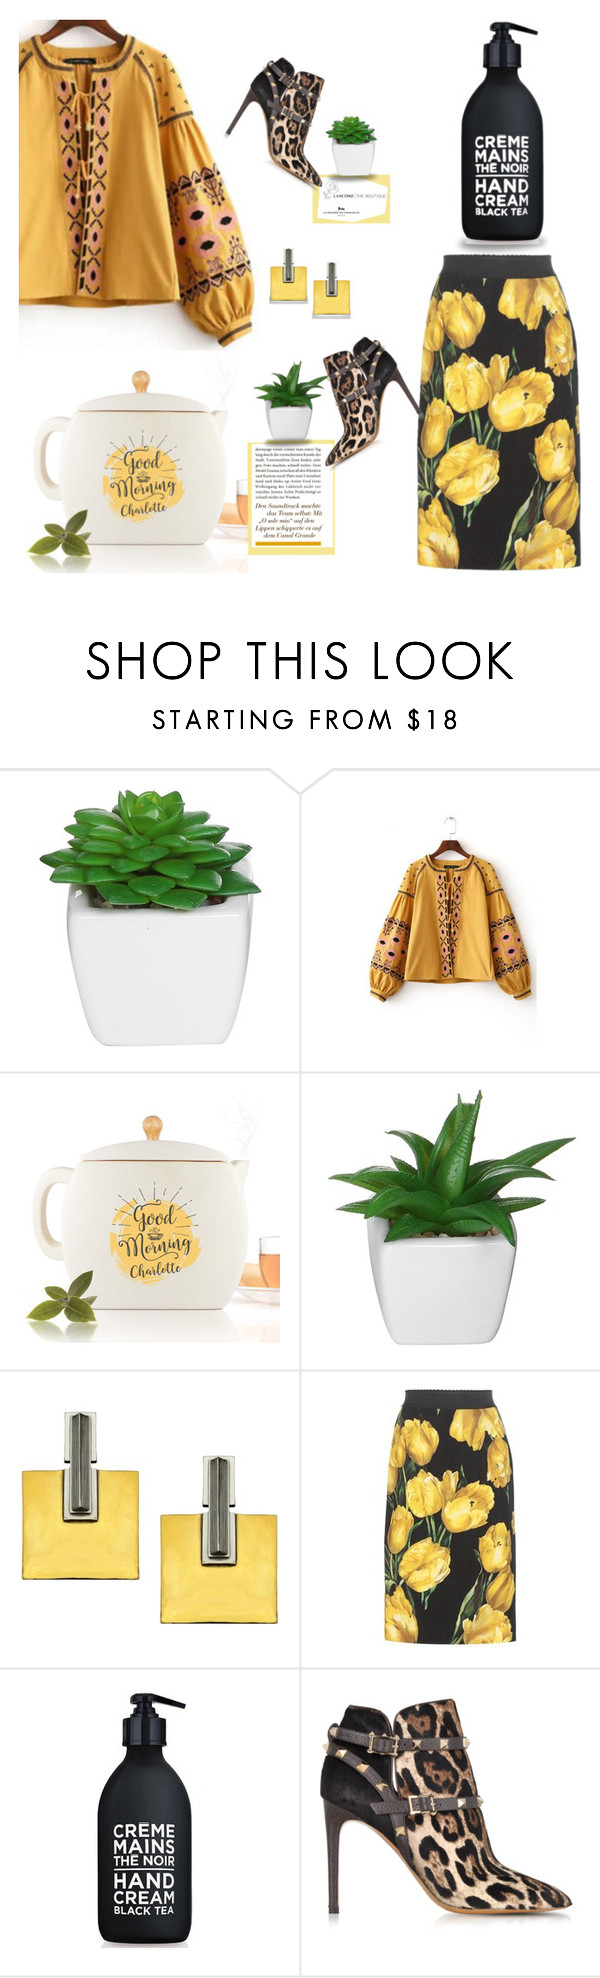 """""""GOOD MORNING, CHARLOTTE"""" by k-hearts-a ❤ liked on Polyvore featuring Dolce&Gabbana, La Compagnie de Provence and Valentino"""